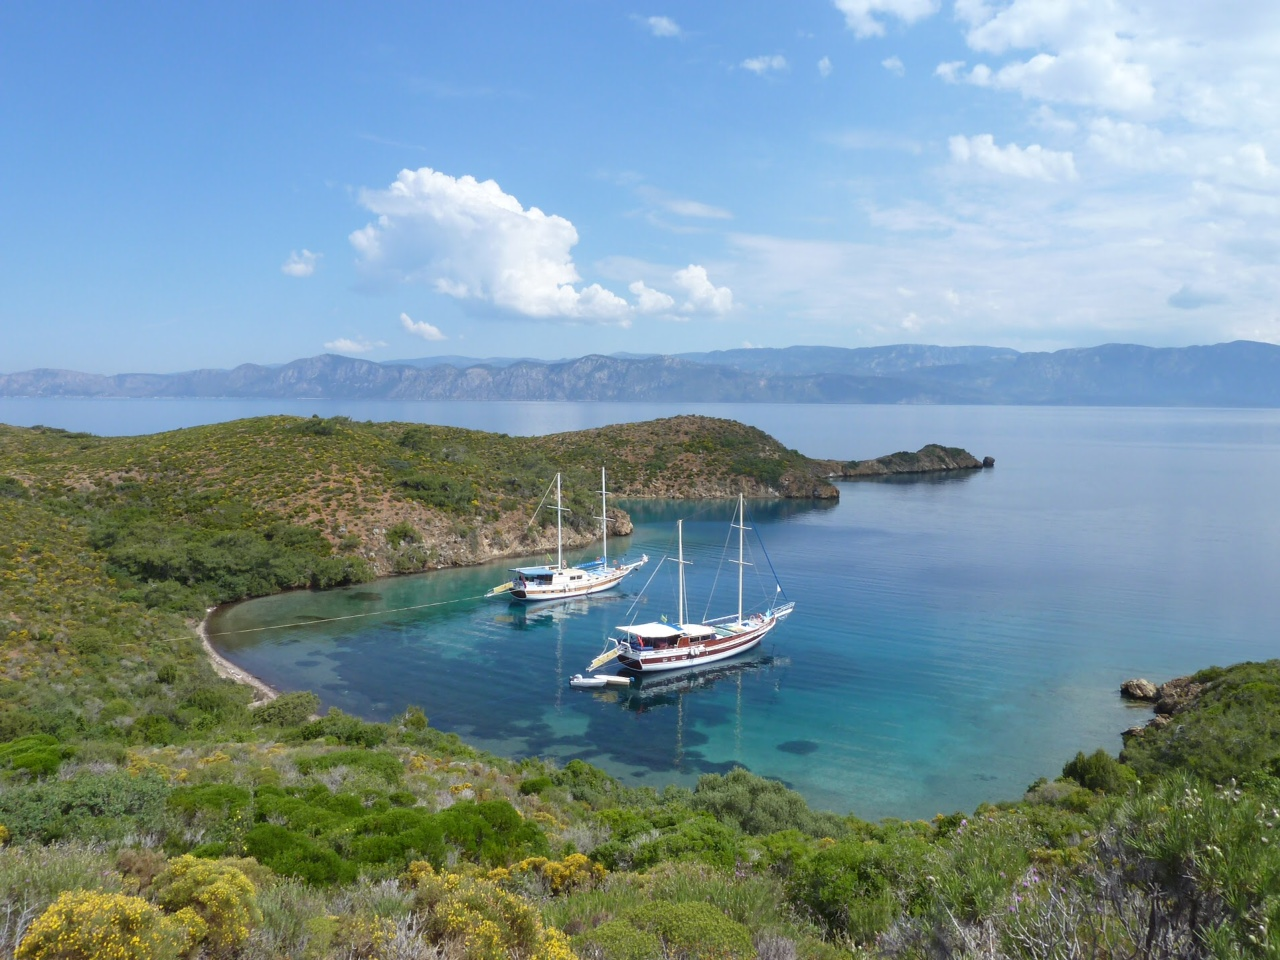 Turkey – Blue Cruising